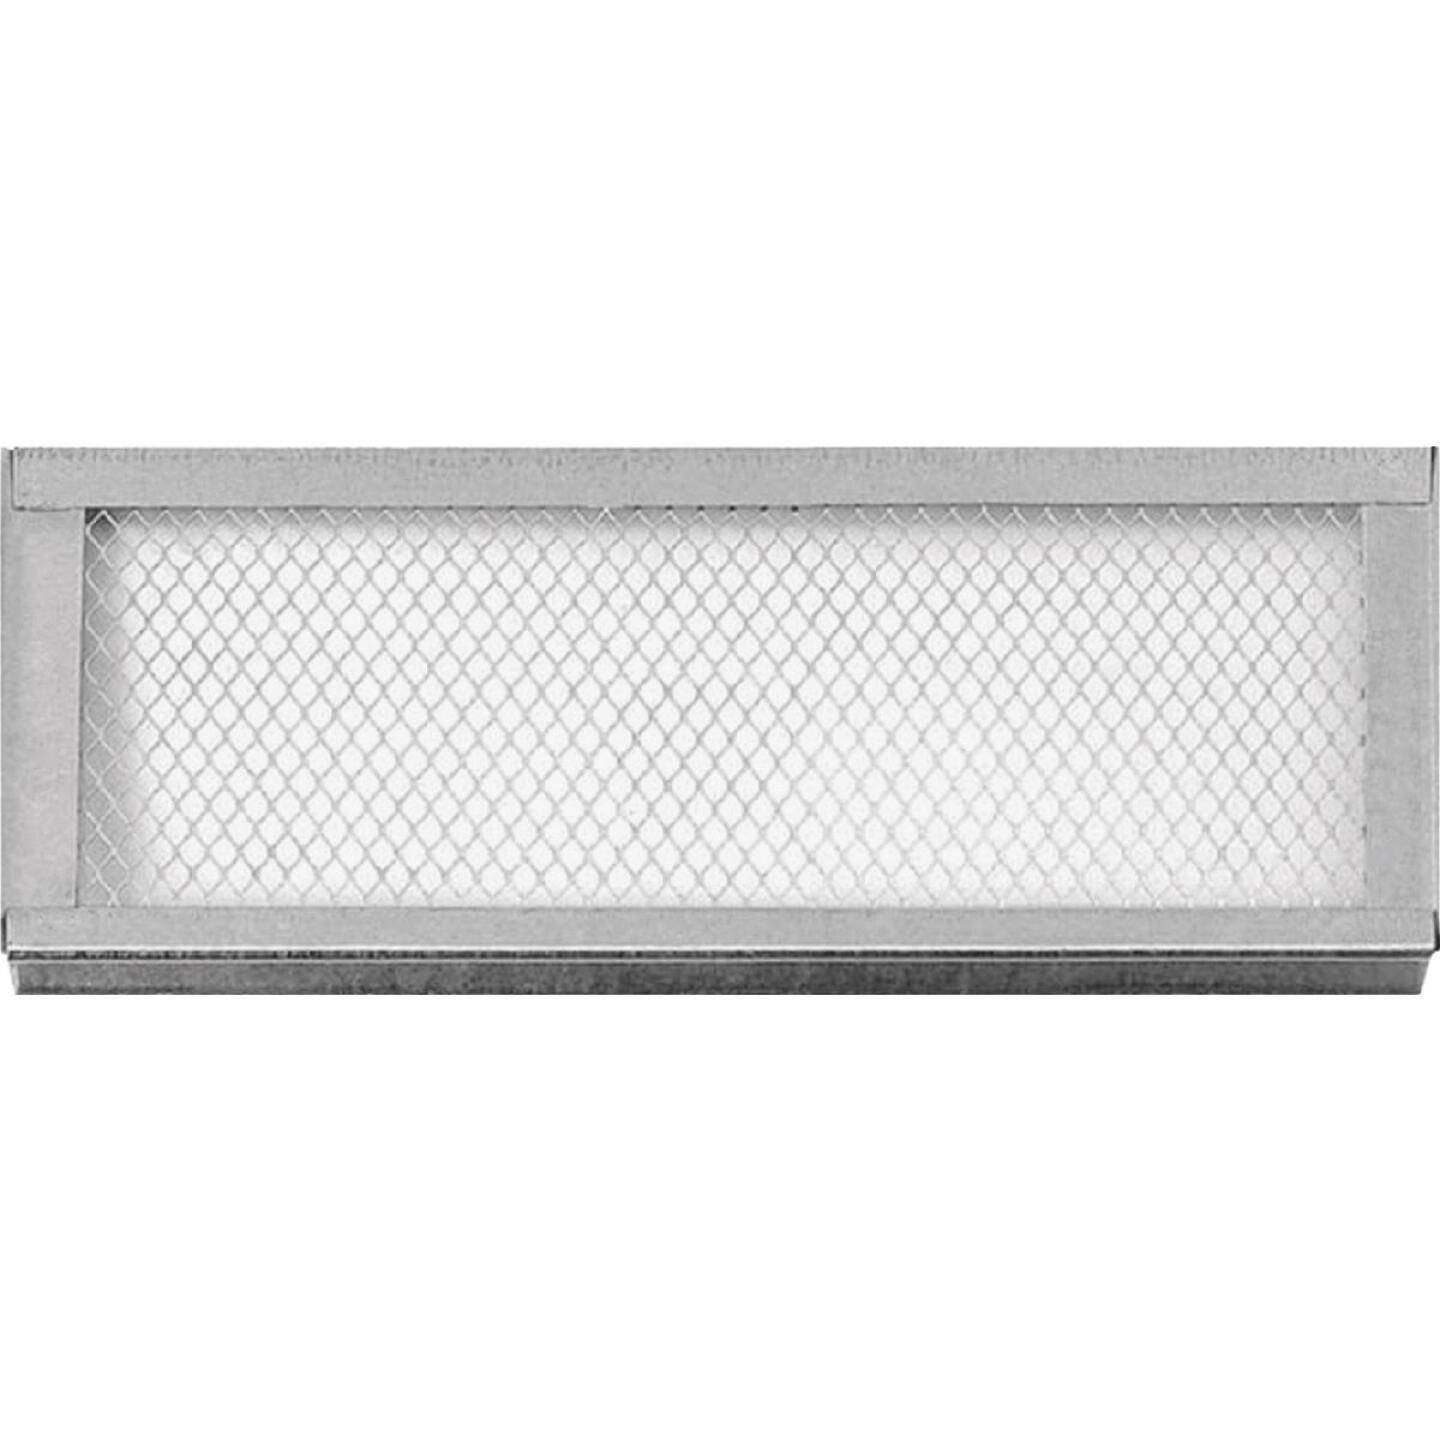 Bay Cities Metal 6 x14 Snap-In Foundation Vent Image 1